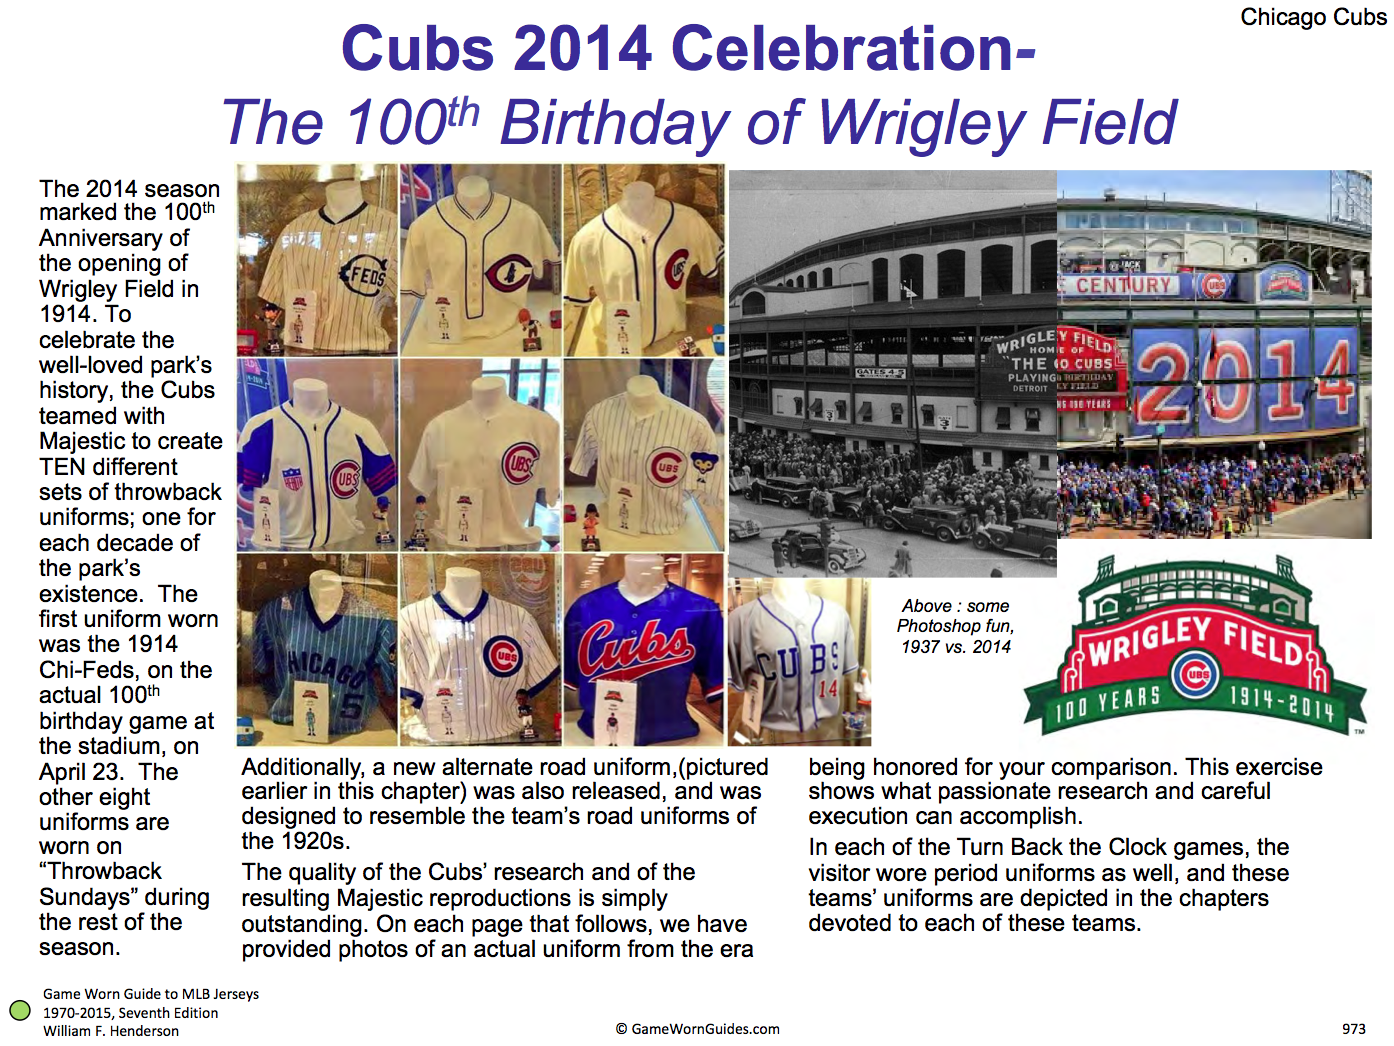 e95aca5091c The Cubbies have worn so many excellent throwbacks (including ...